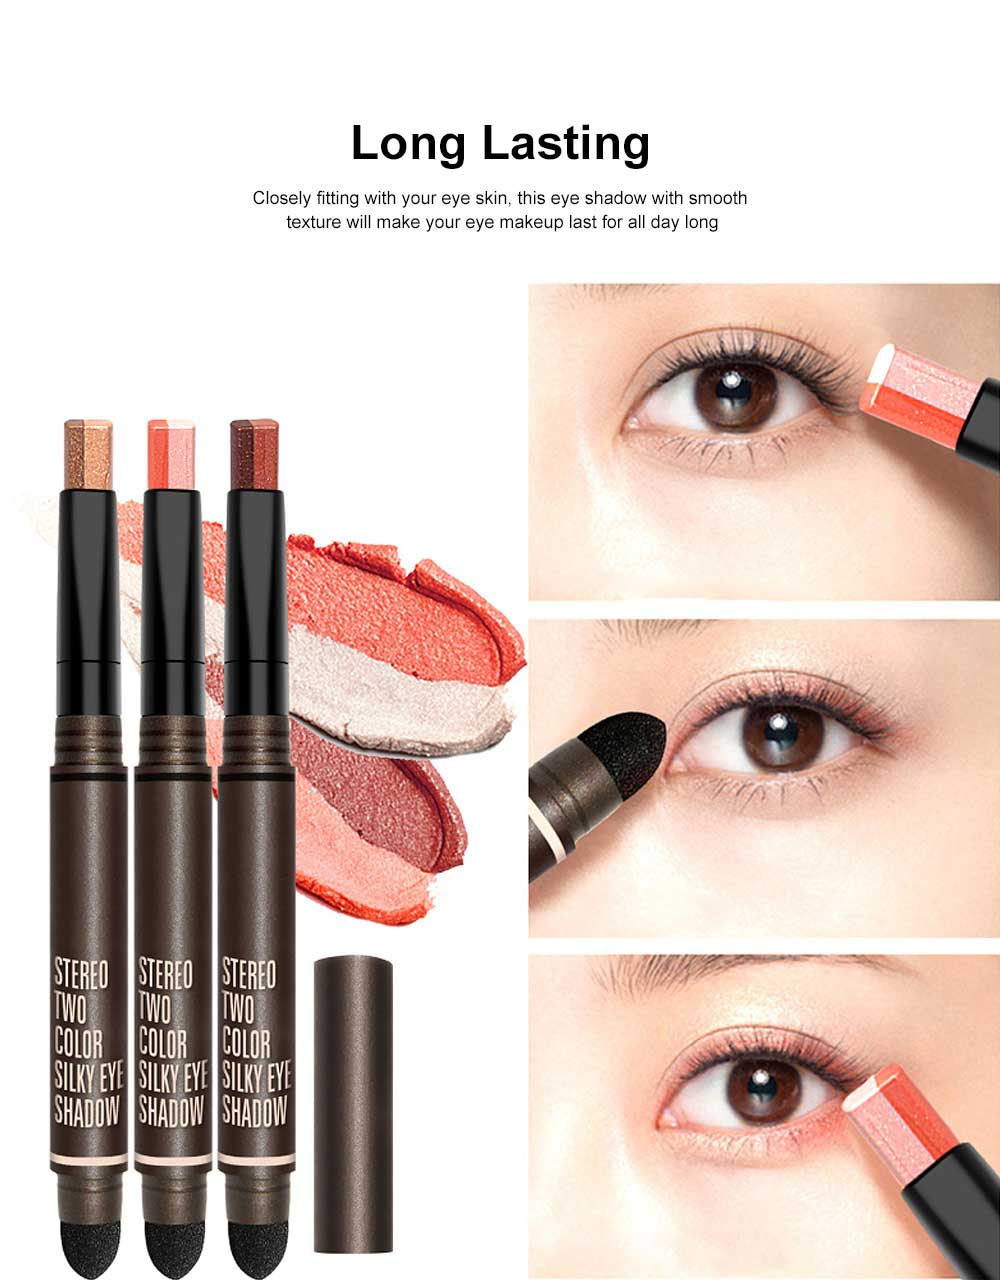 Portable Dual Color Eye shadow Stick Waterproof Long-Lasting Eye Makeup Stick Pearl Effect Cosmetic for Beginner 3